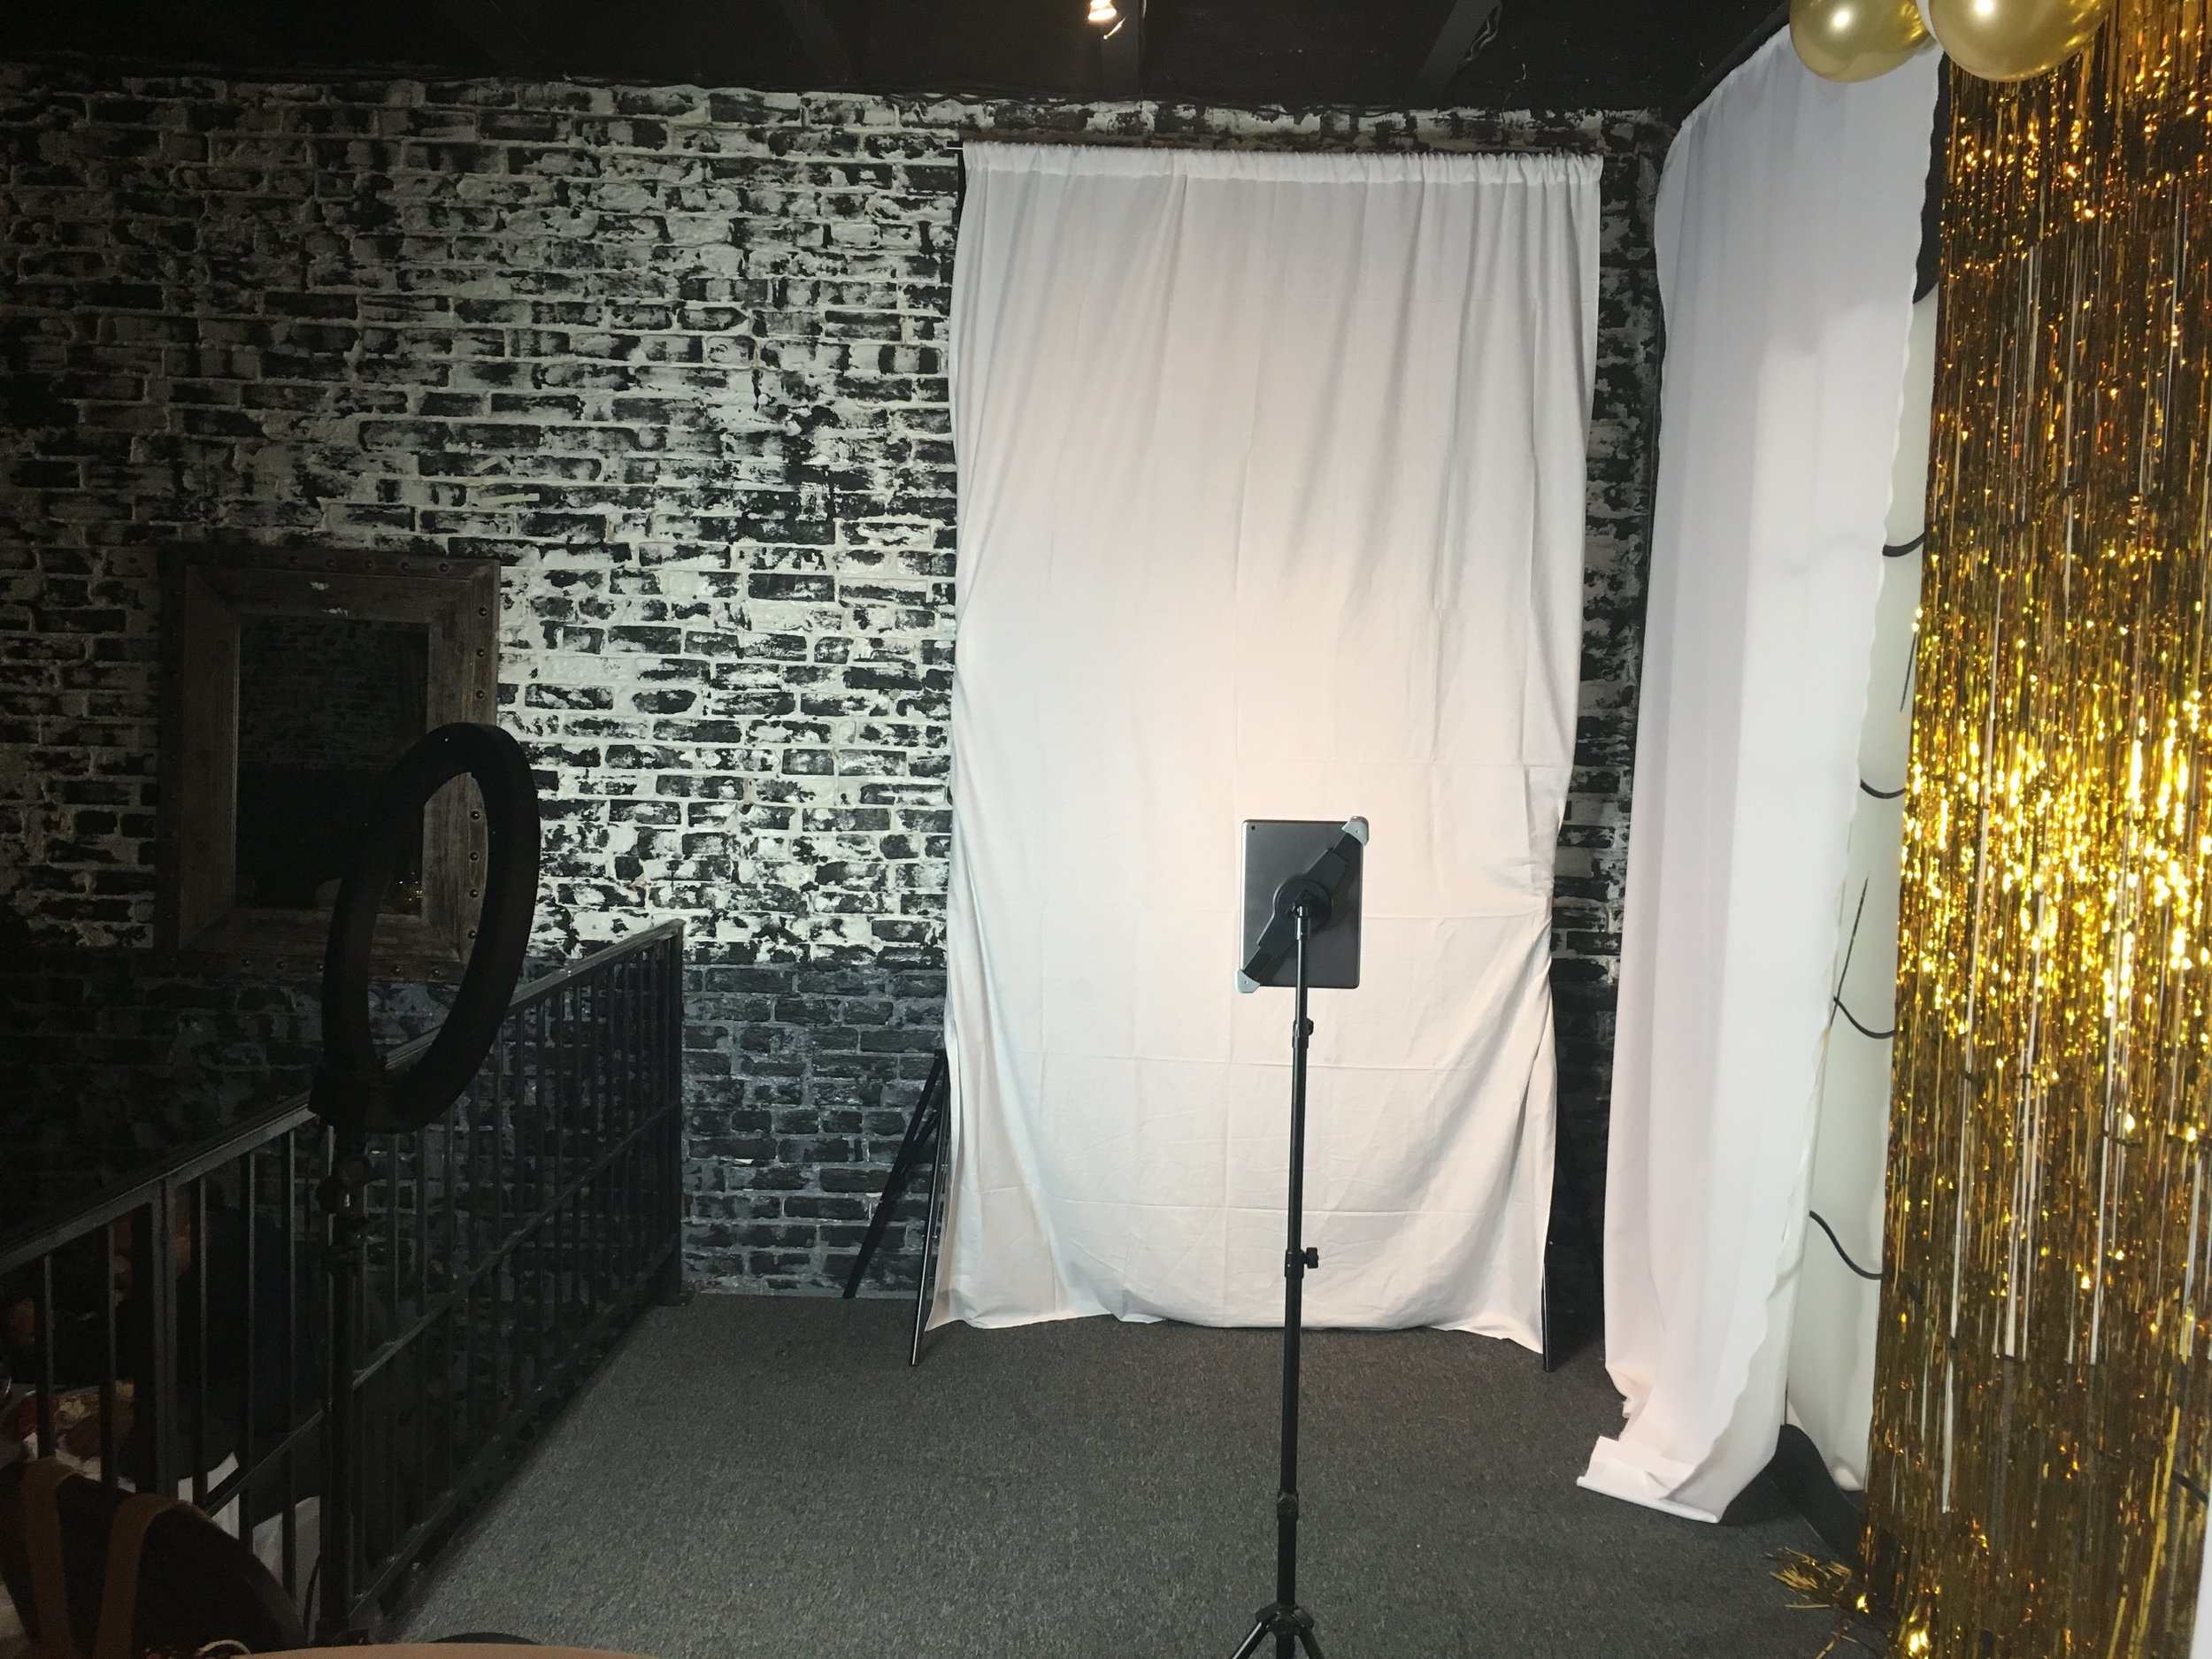 Behind the scenes of our basic photo booth setup